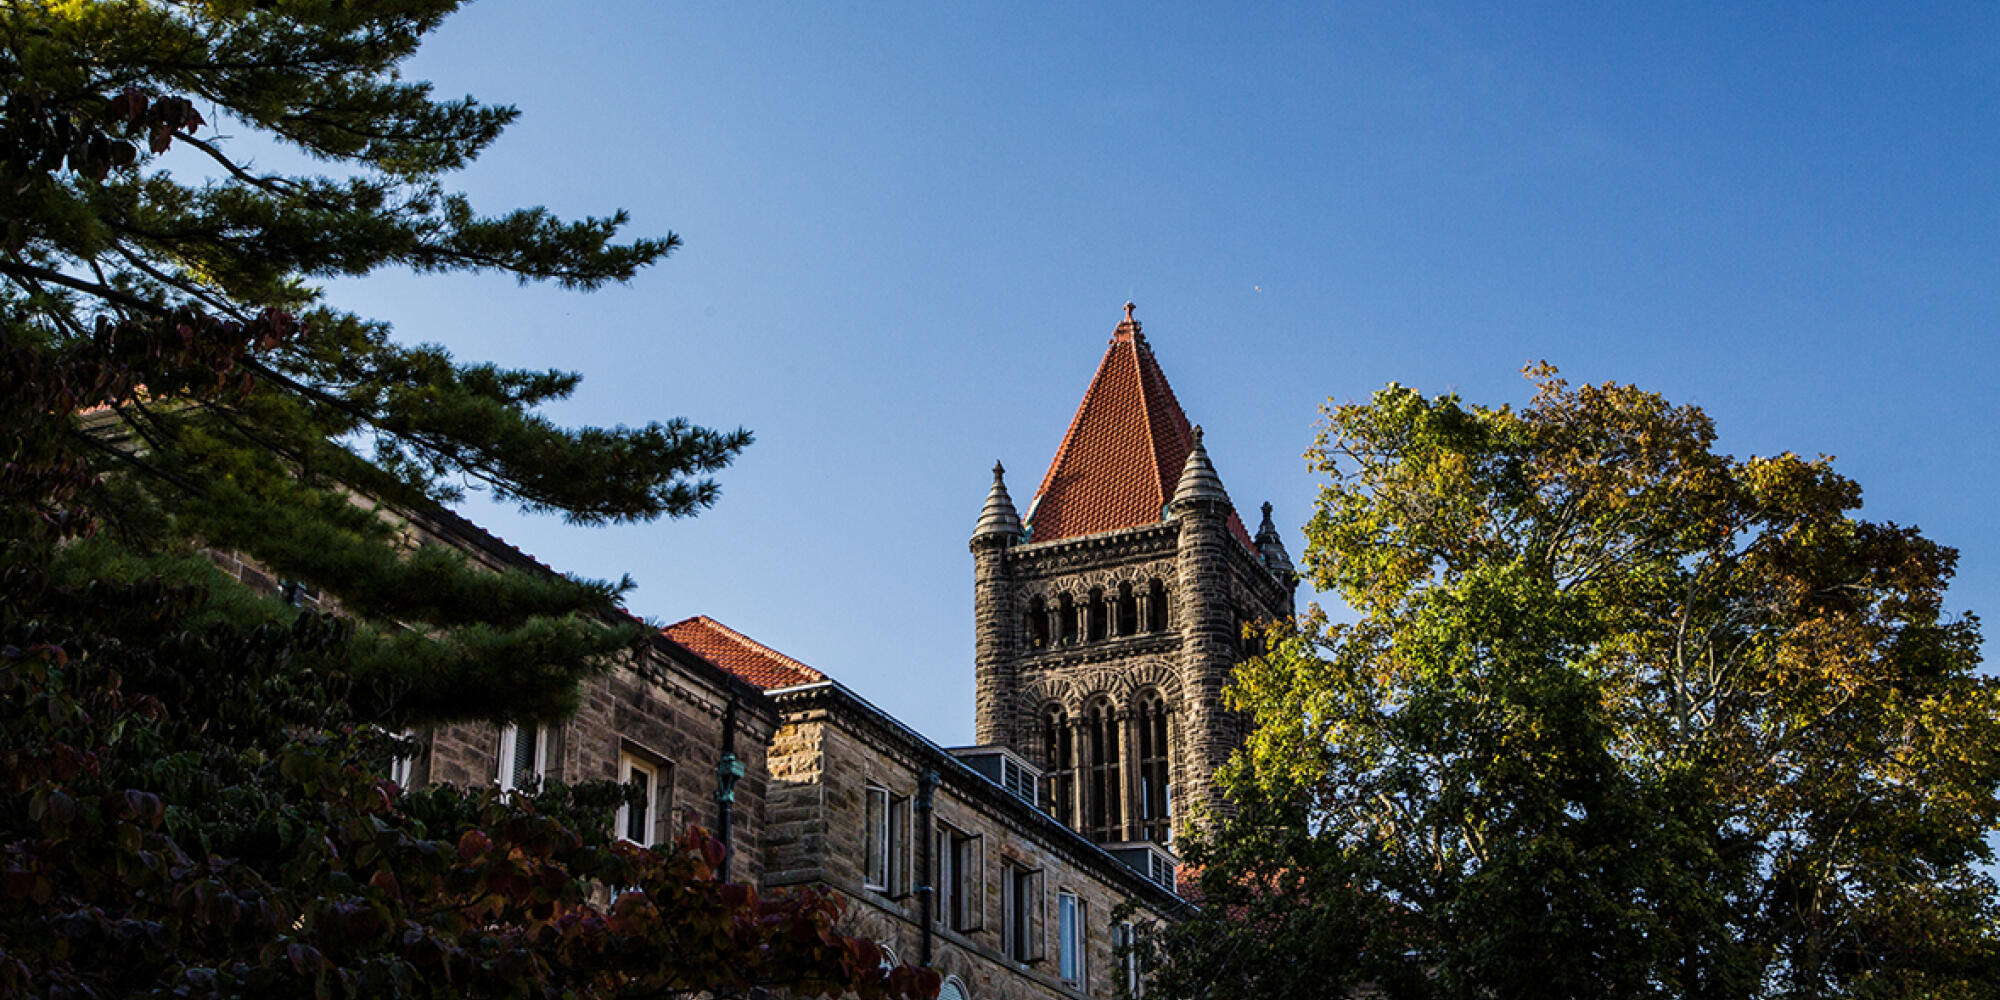 Altgeld Hall tower on the University of Illinois campus - Champaign, Illinois.